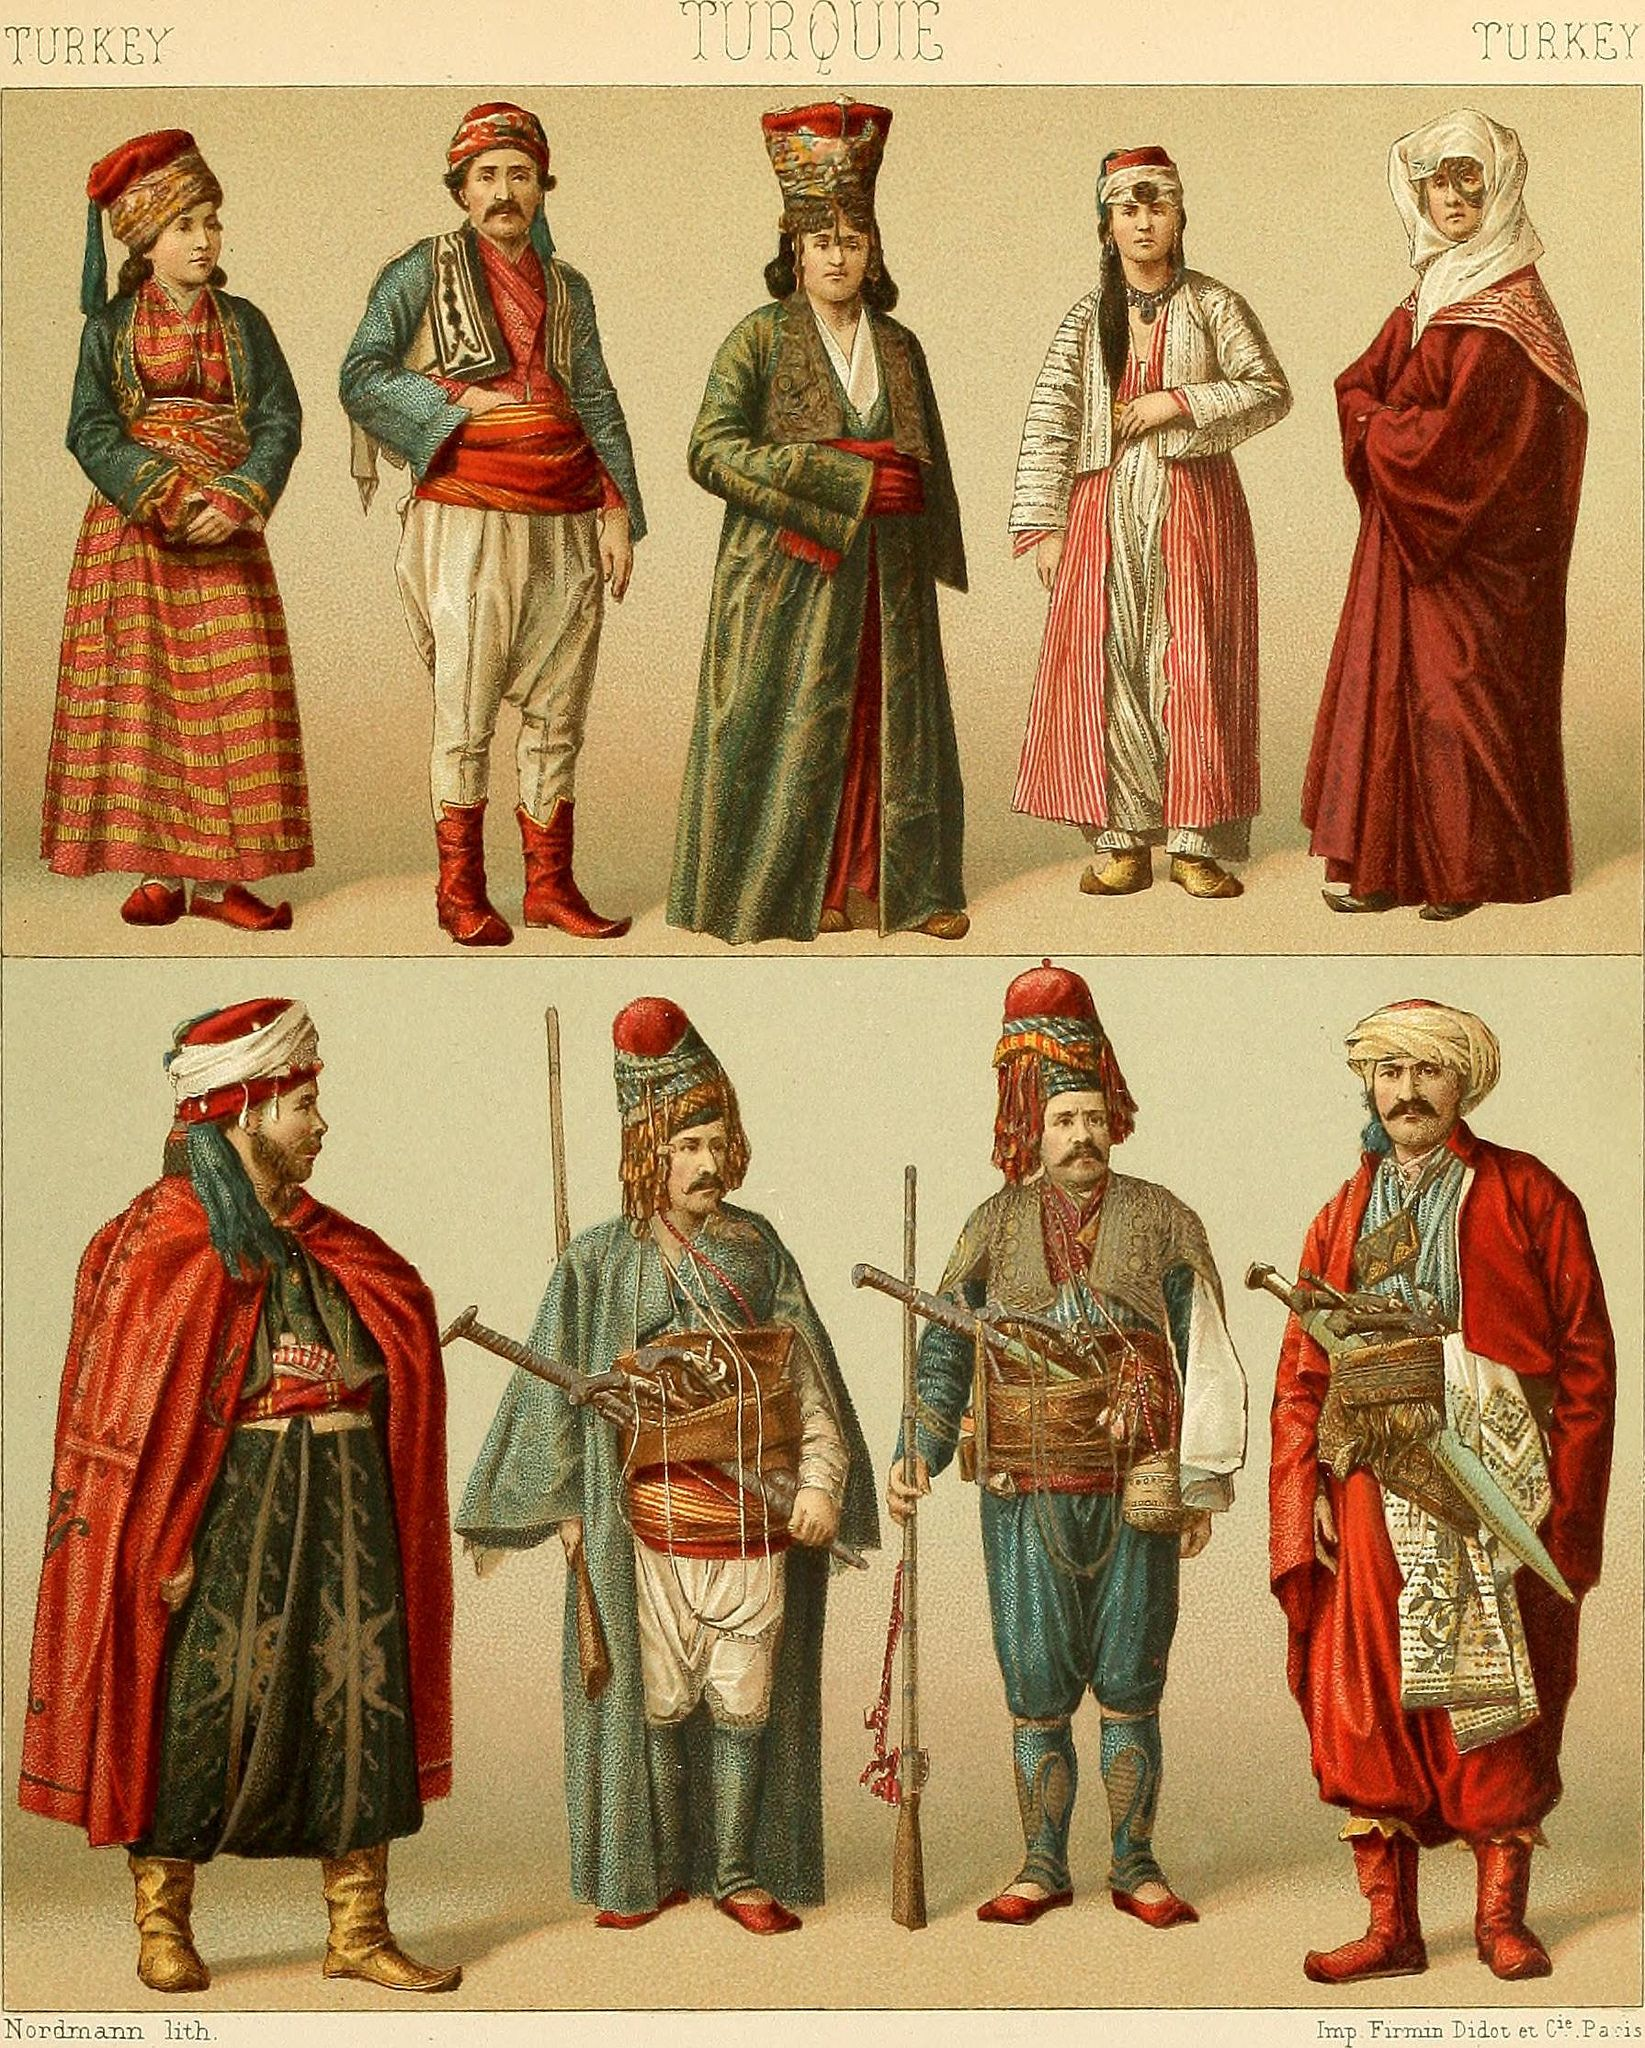 Image From Page 370 Of Le Costume Historique Cinq Cents Planches Trois Cents En Couleurs Or Et Argent Deux Cents En Camaieu Types Principaux Du Vetement E Ottoman Empire Turkish Clothing